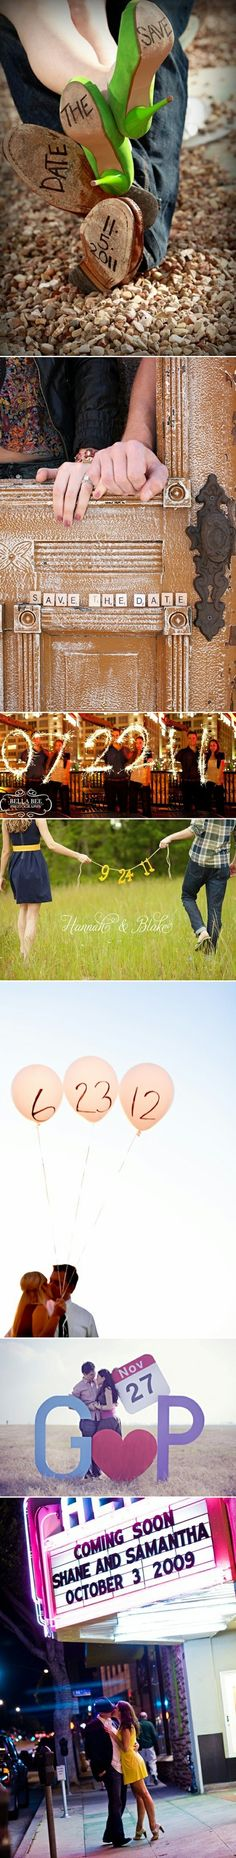 dream wedding / Save the Date >> Some really wonderful ideas!